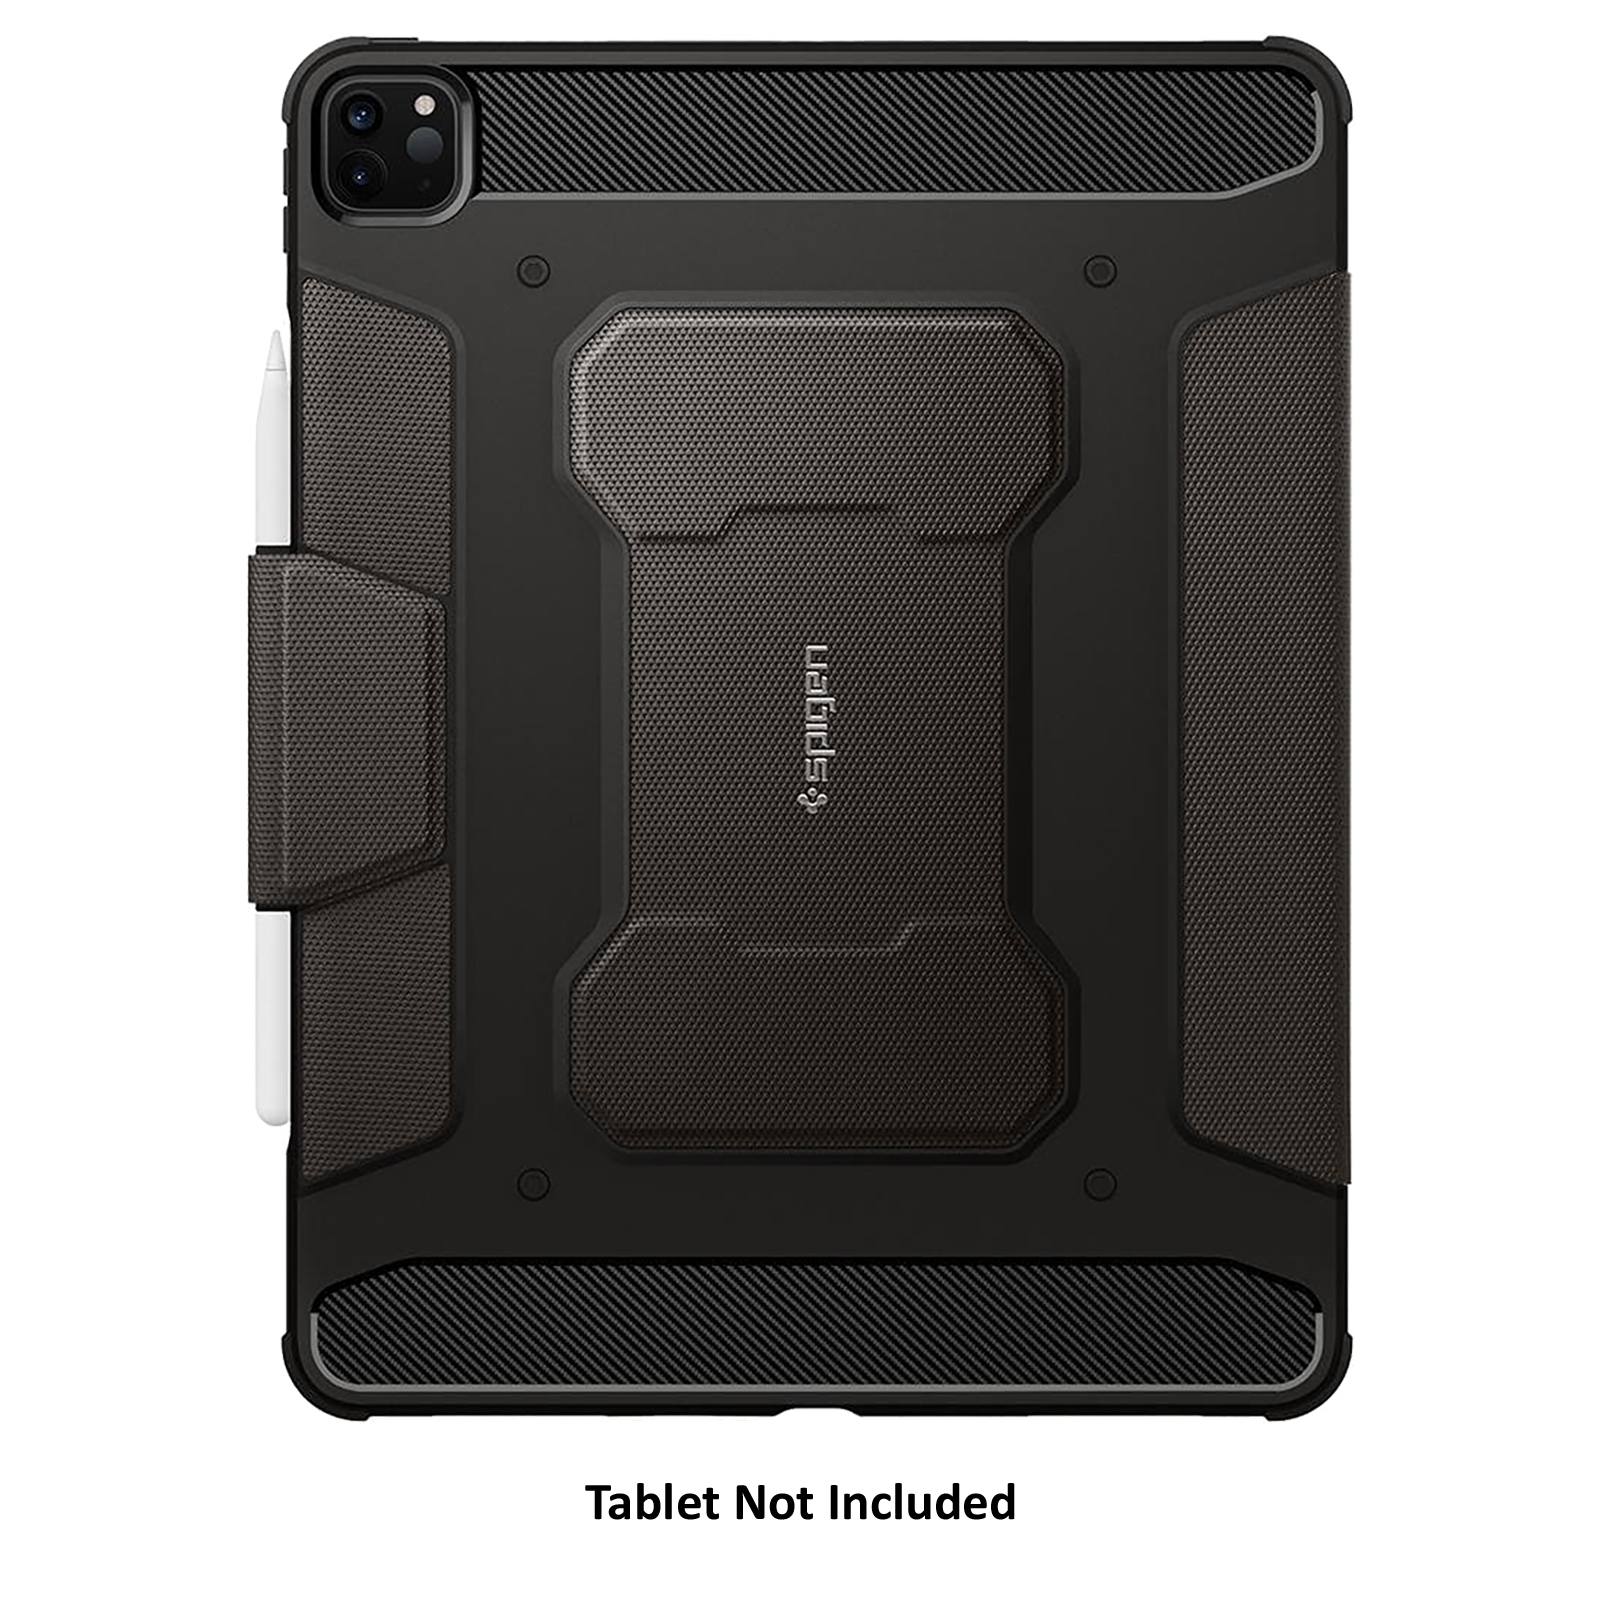 """Spigen Rugged Armor Pro PU Leather and TPU Full Cover Case For iPad Pro 11"""" (2021/2020/2018) (Air Cushion Technology, ACS01025, Gunmetal)_3"""